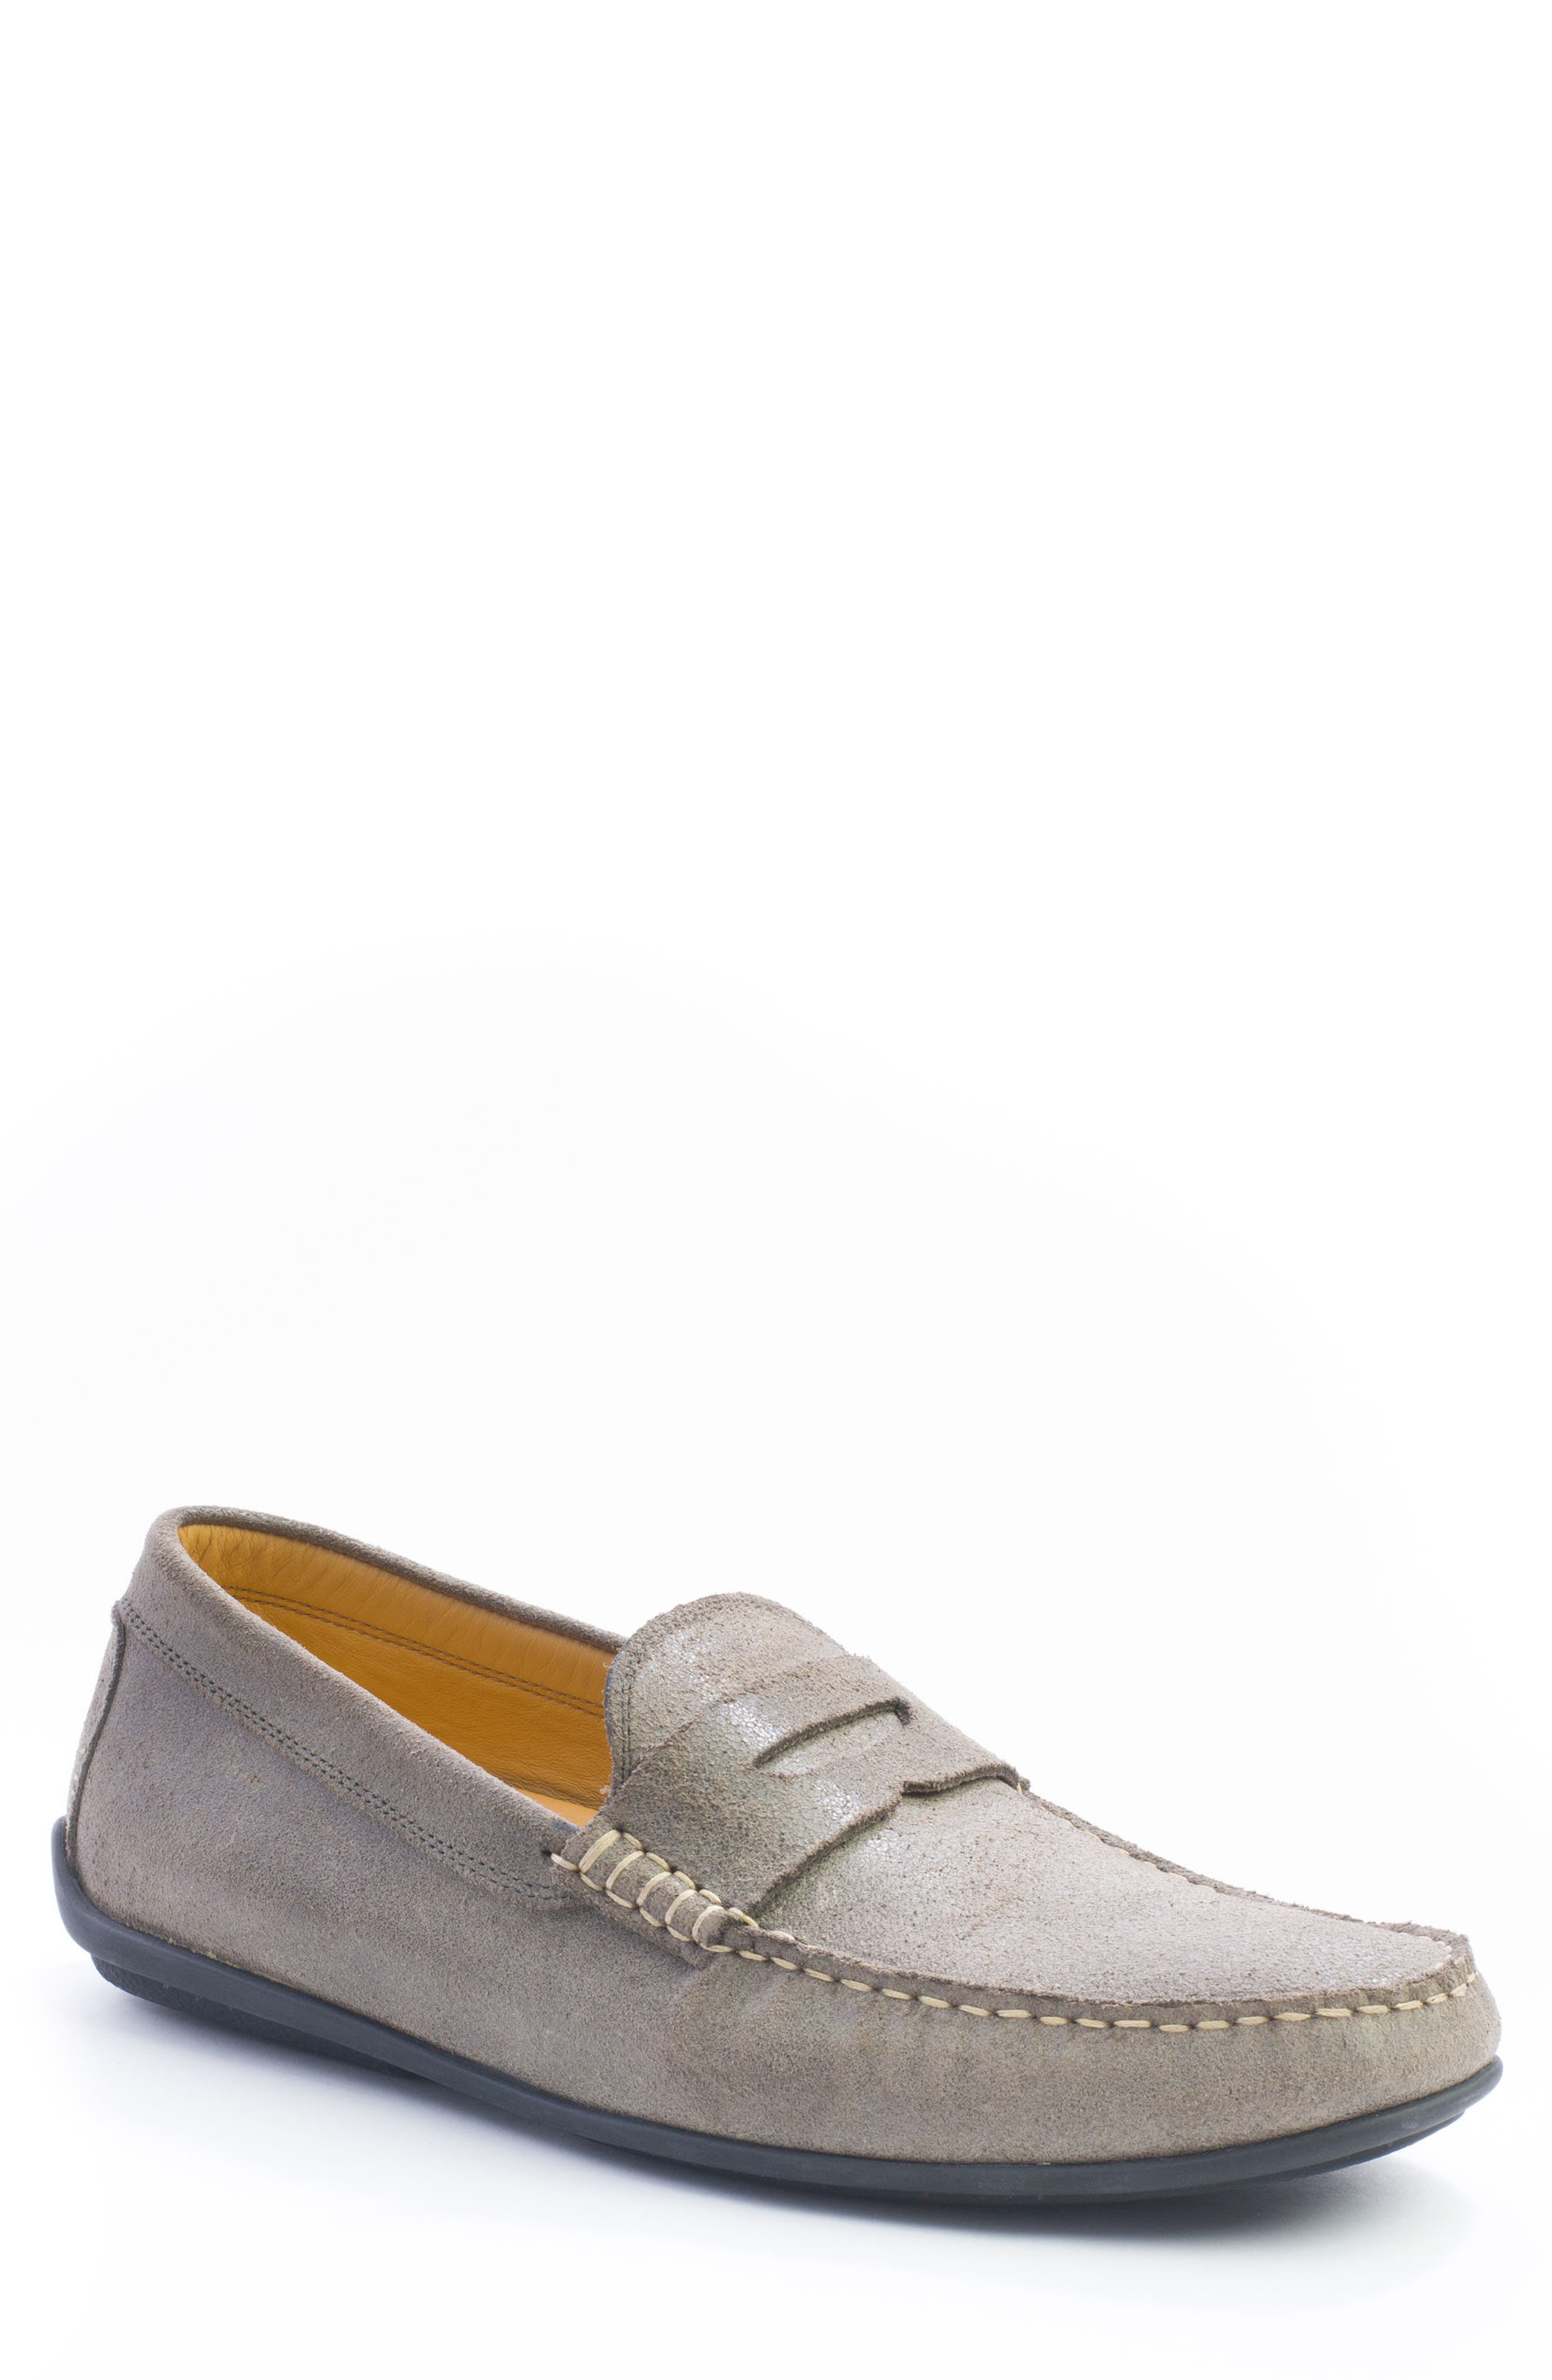 Barretts Penny Loafer,                             Main thumbnail 1, color,                             GREY